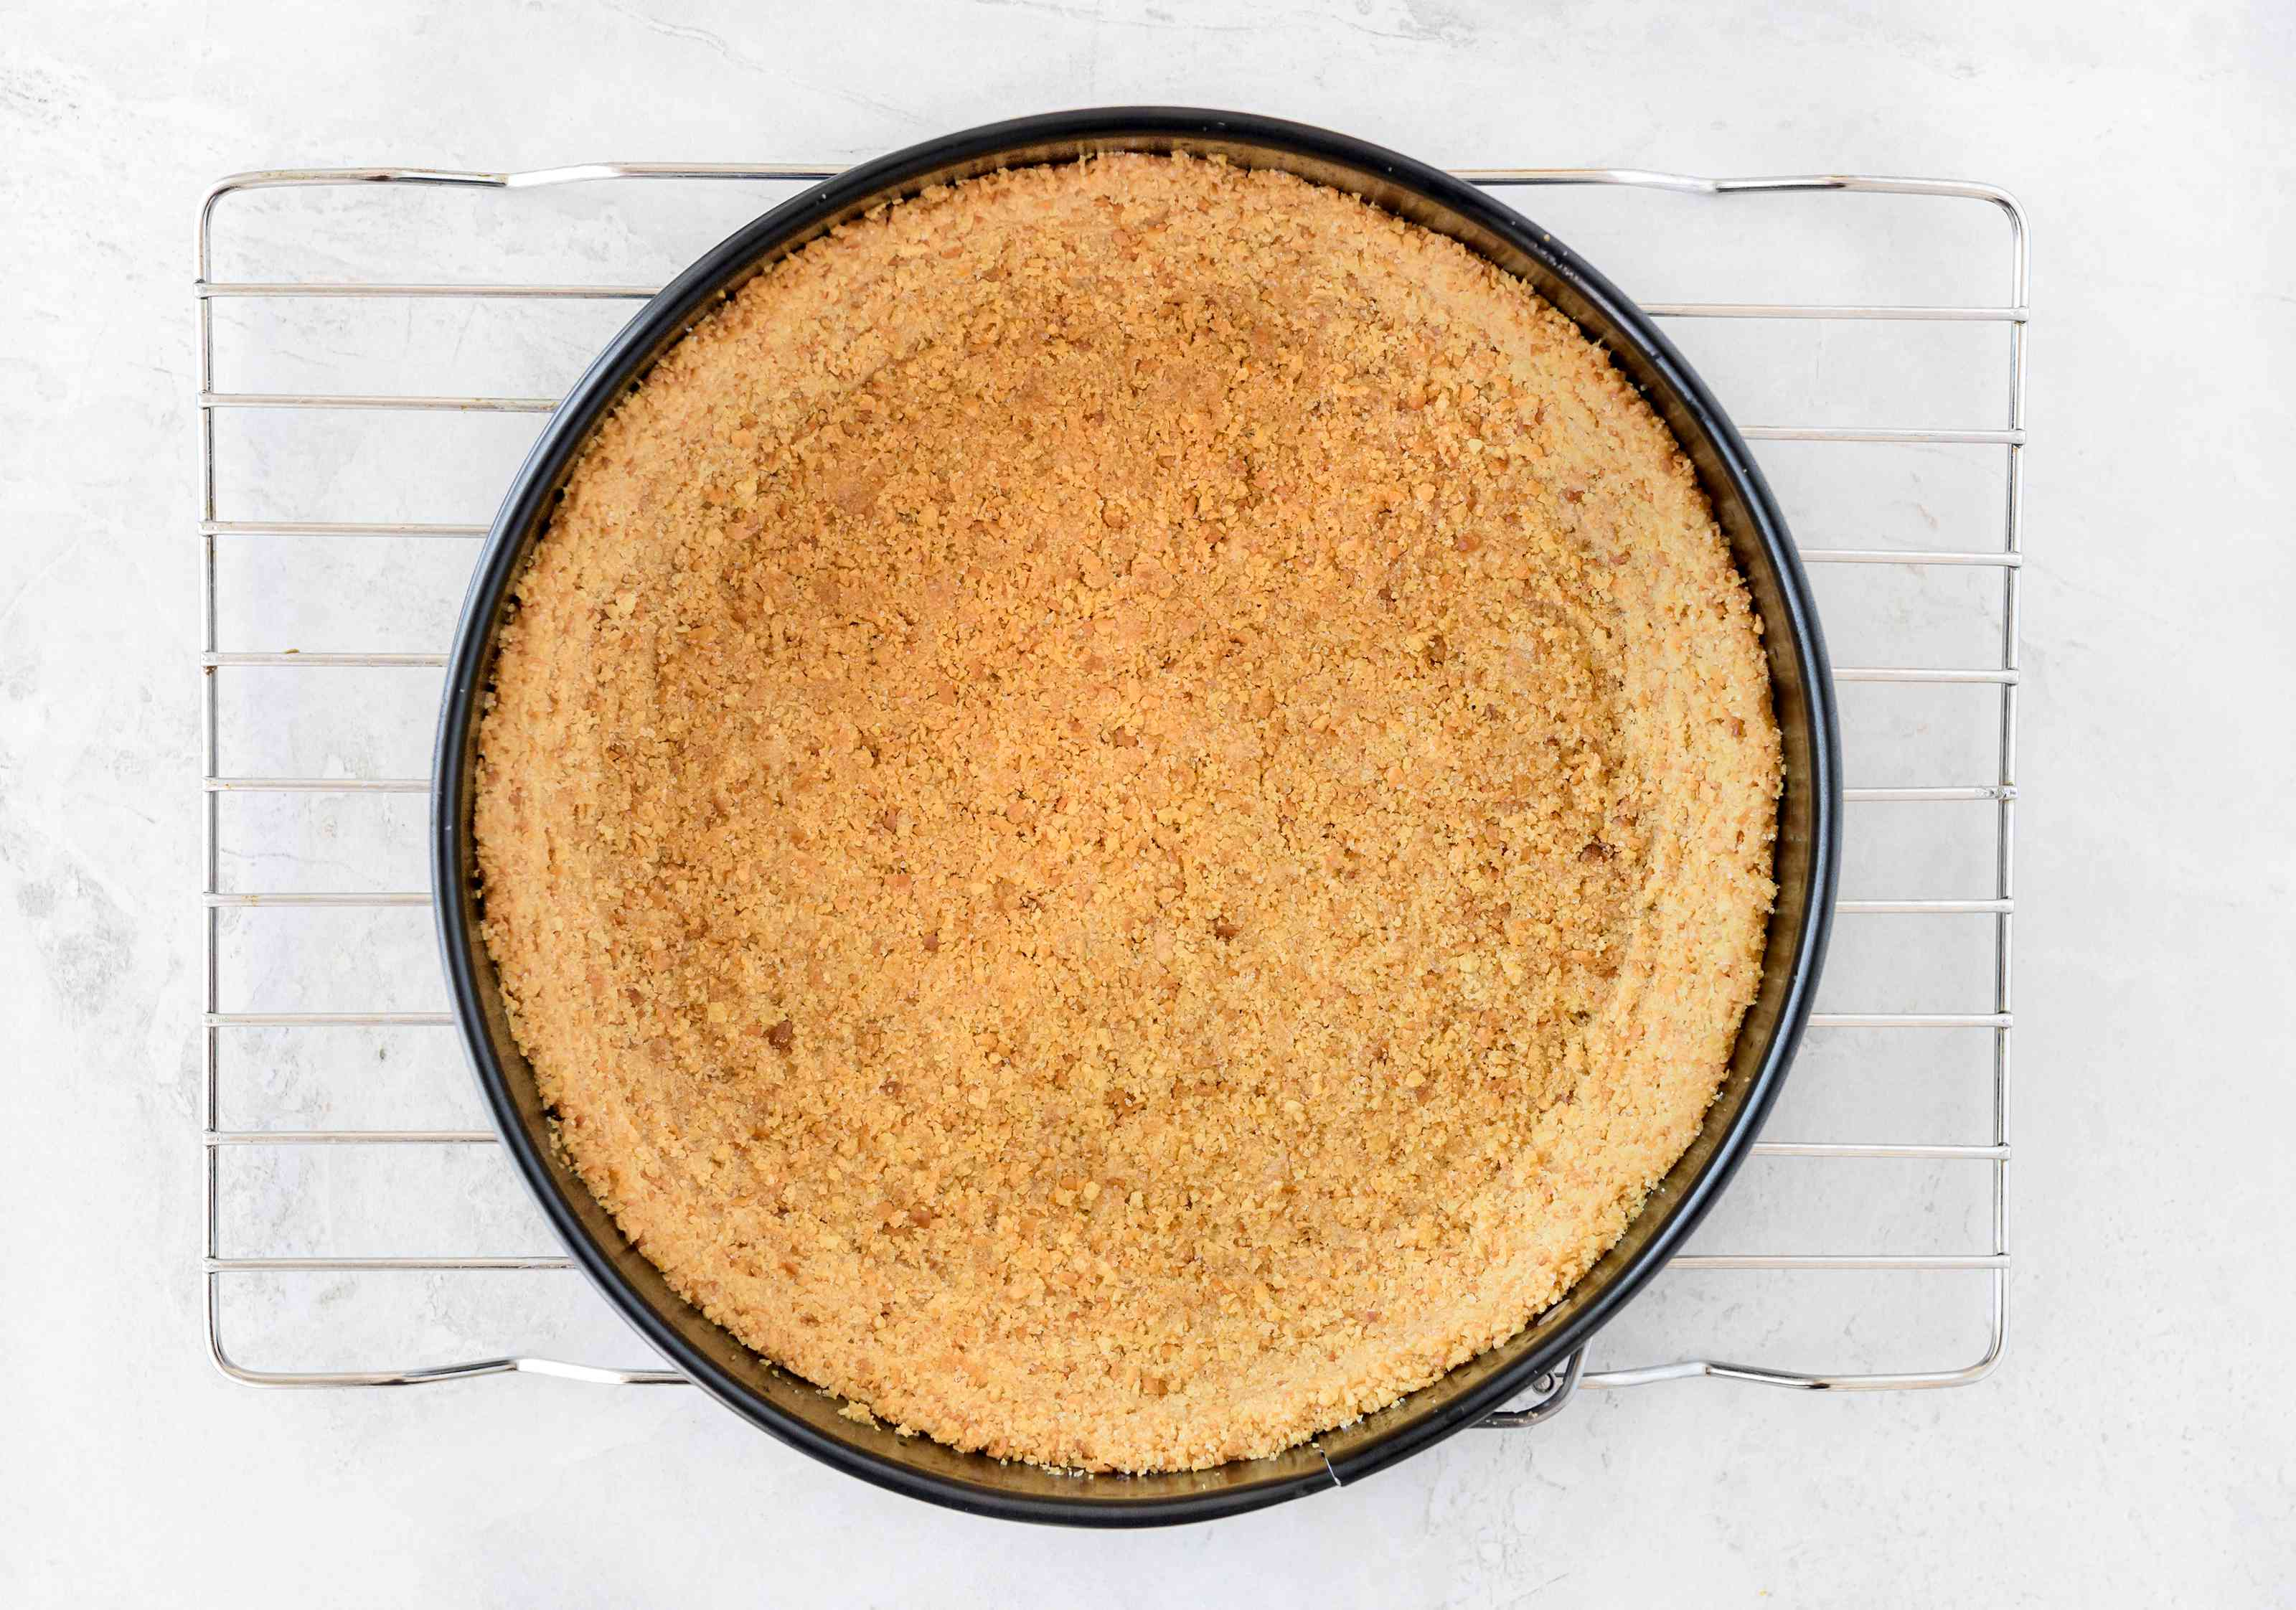 Dairy-free cheesecake crust on cooling rack